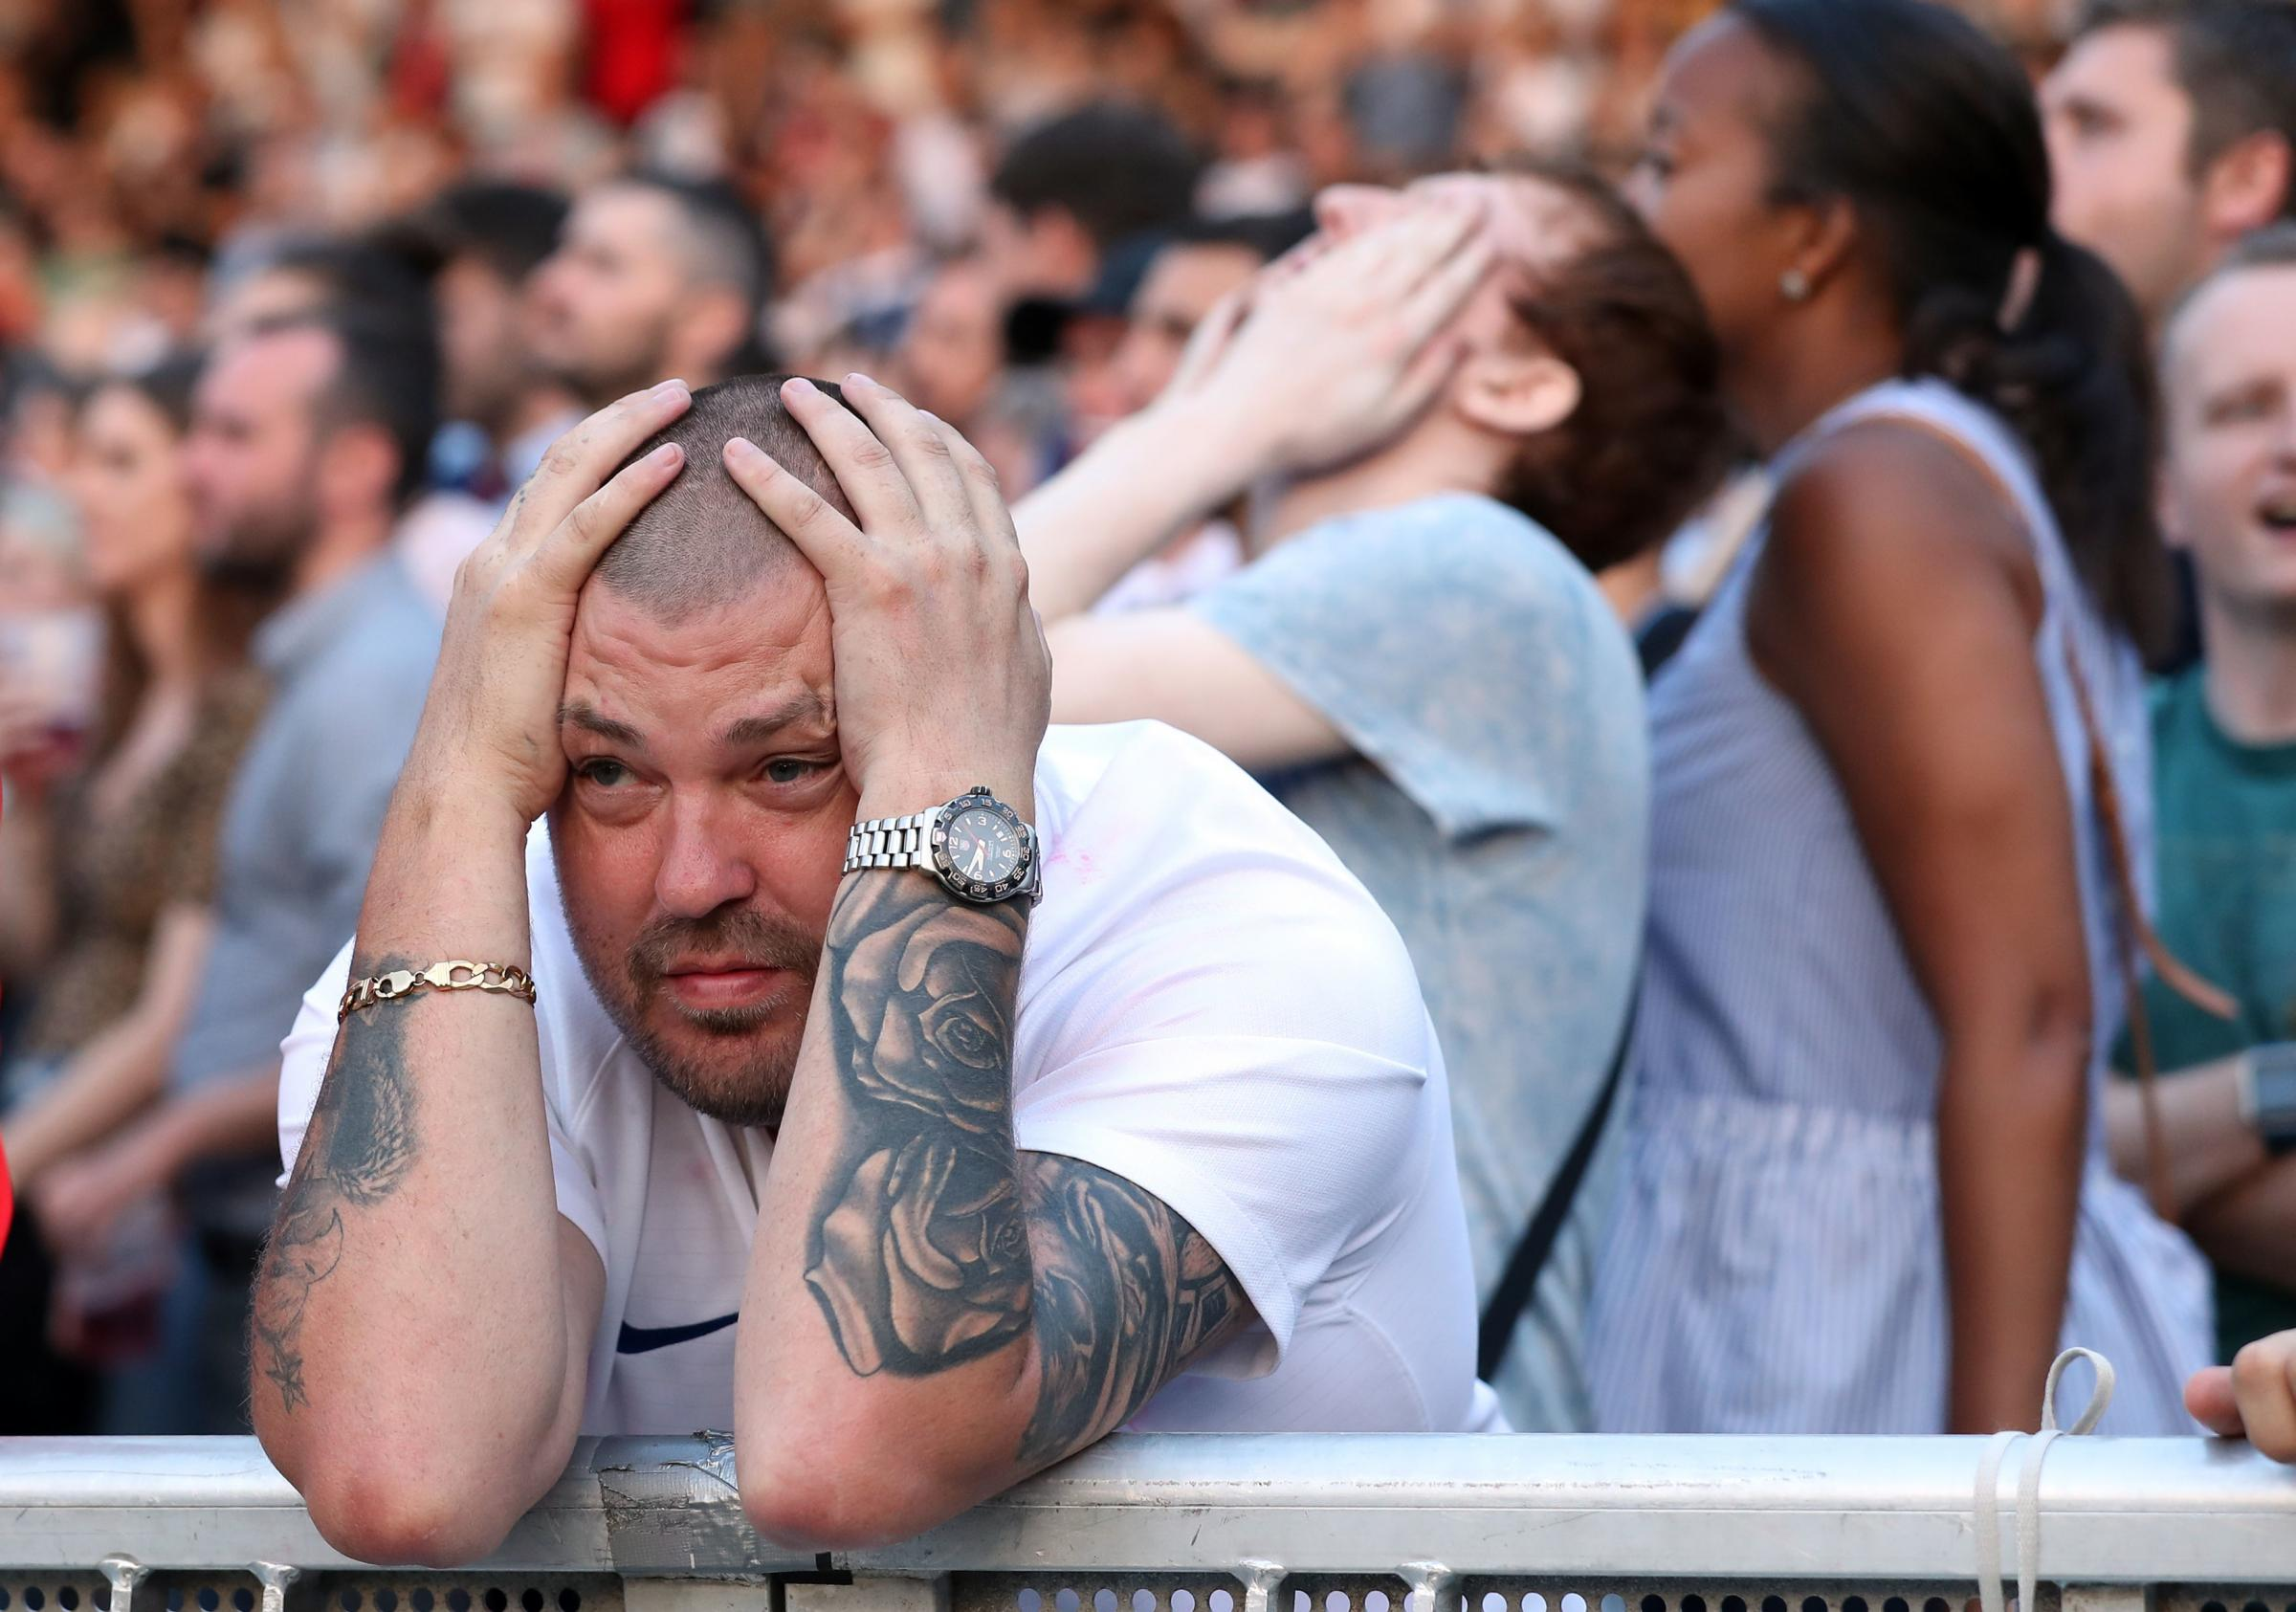 England exited the World Cup after a semi-final defeat to Croatia